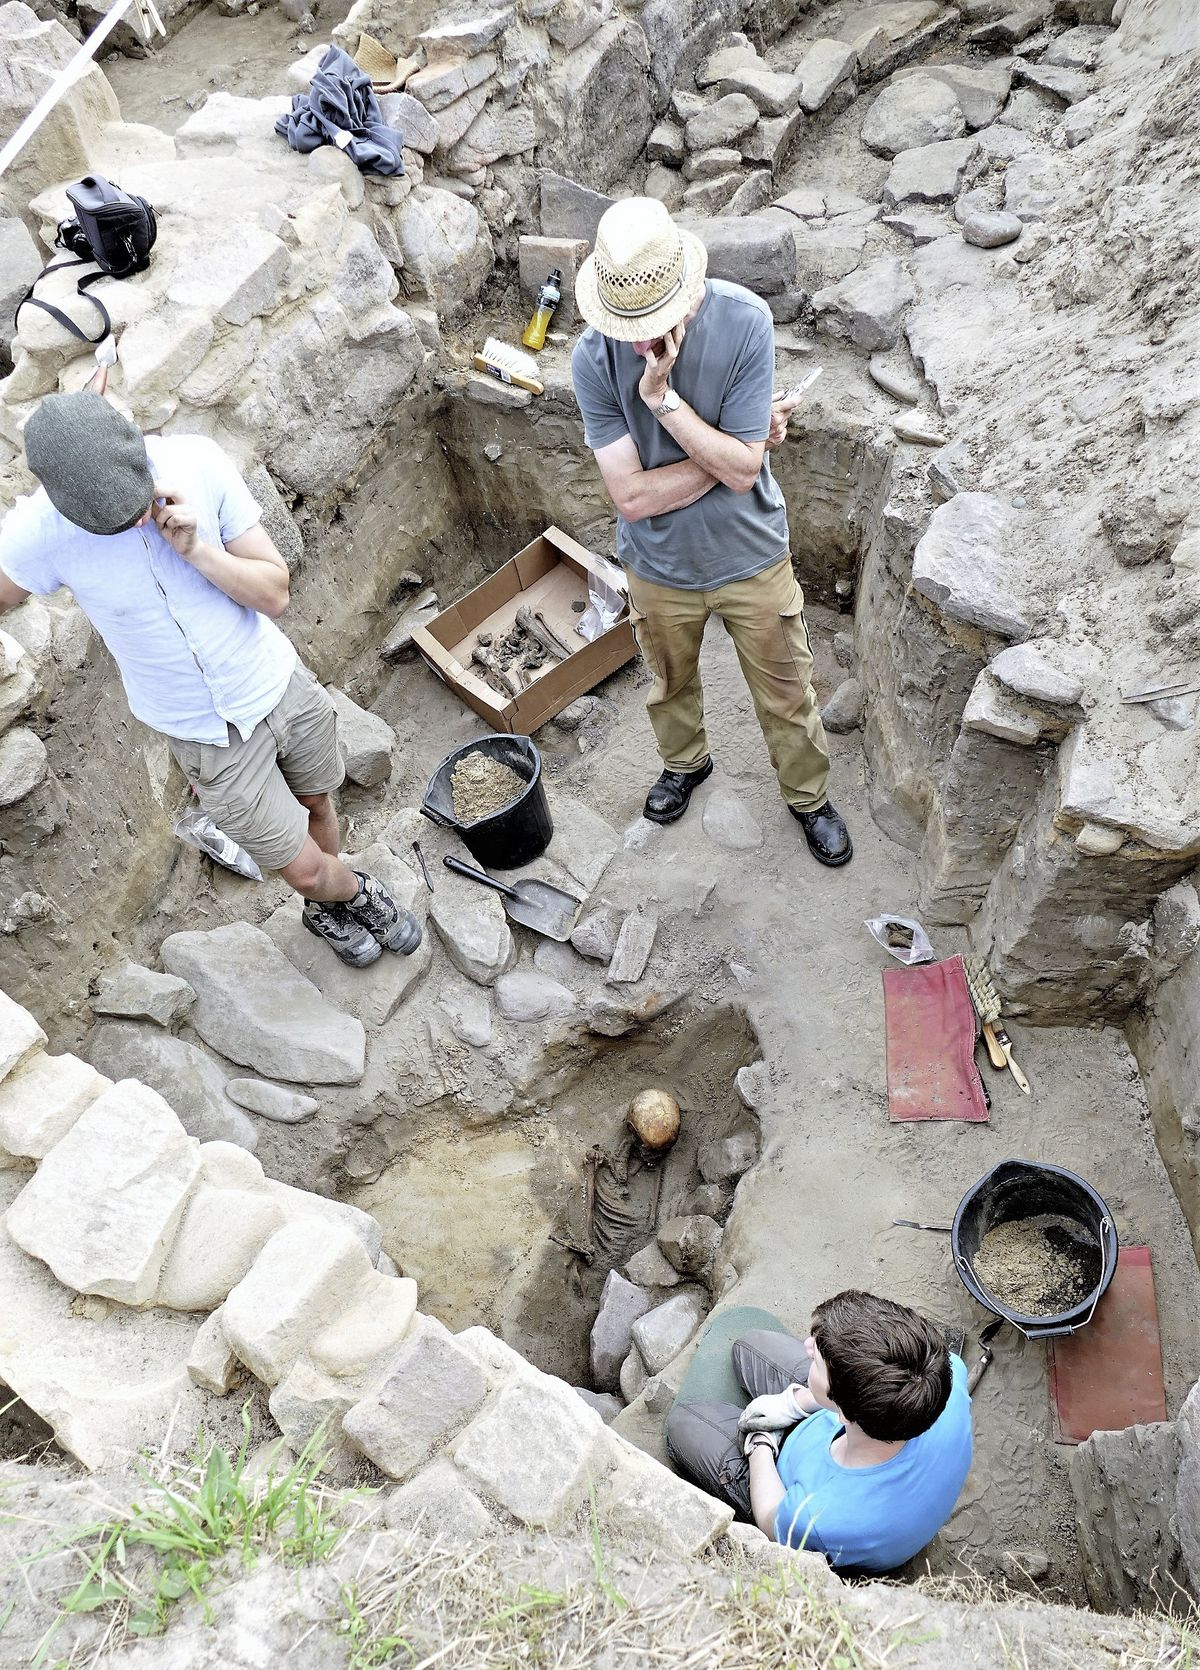 States archaeologist Phil de Jersey, in the straw hat, examines one of the Alderney skeletons. Photo: David Nash. (29471665)